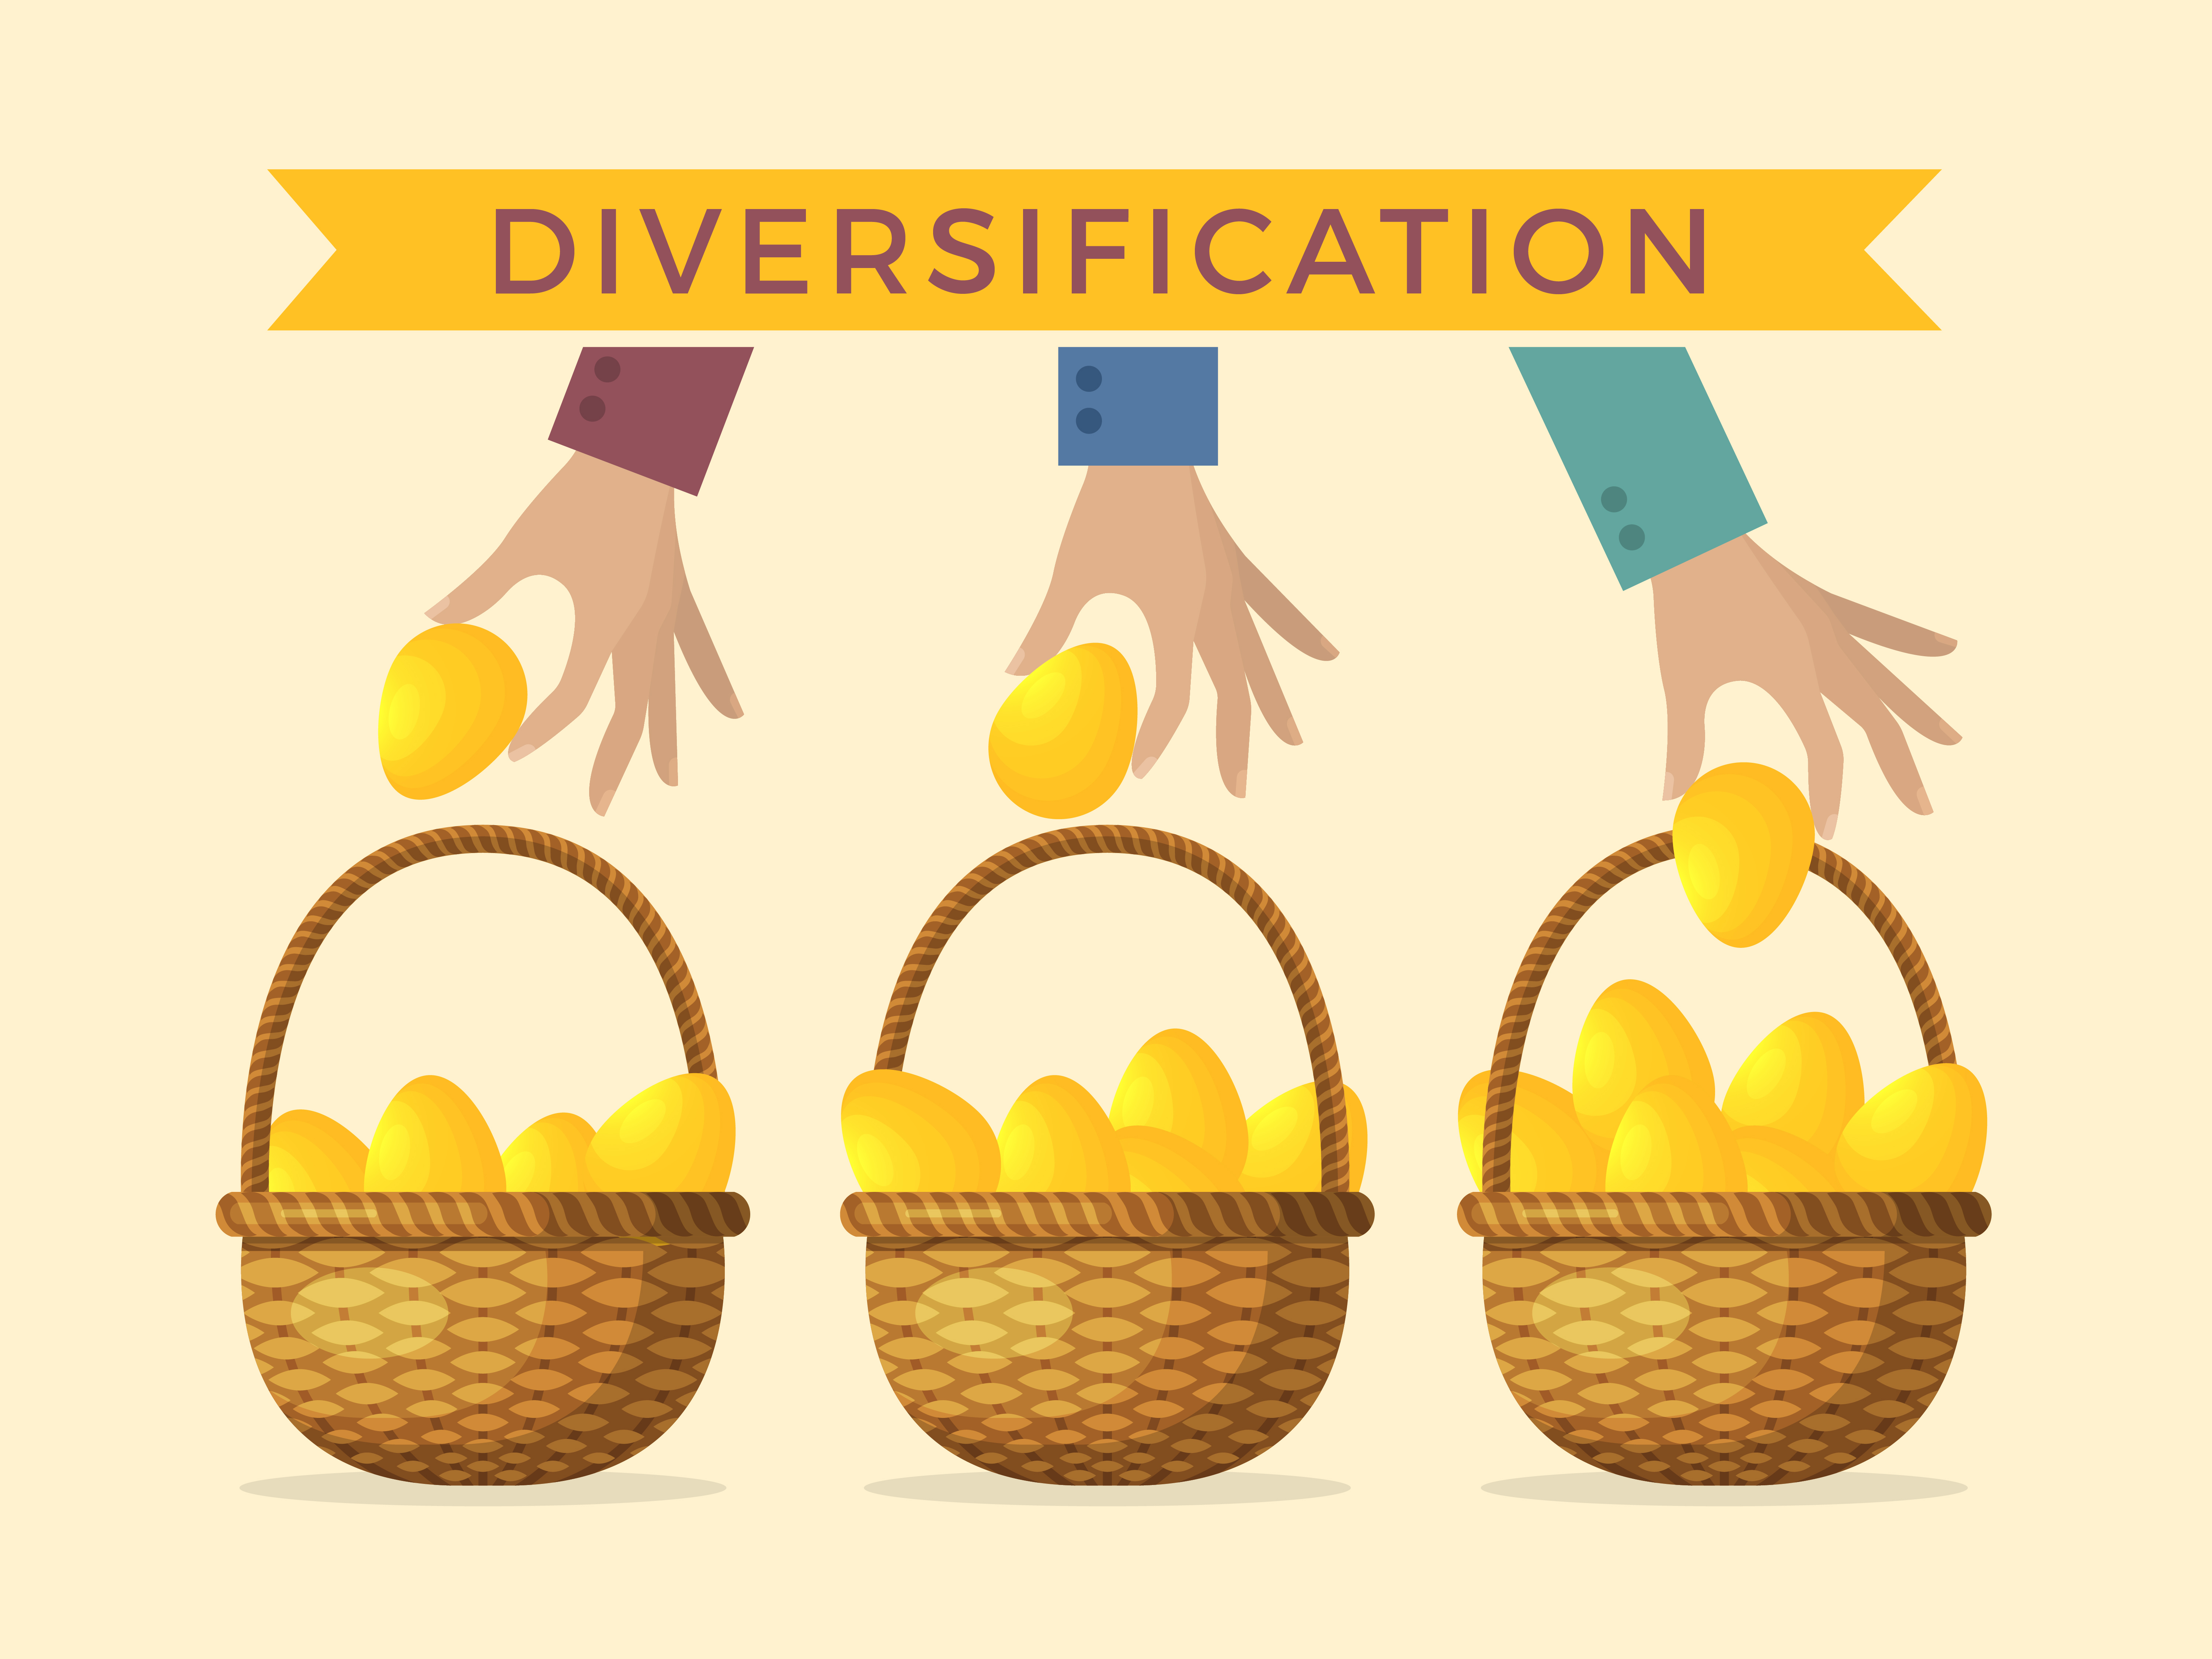 Diversification: Don't put all your eggs in one basket